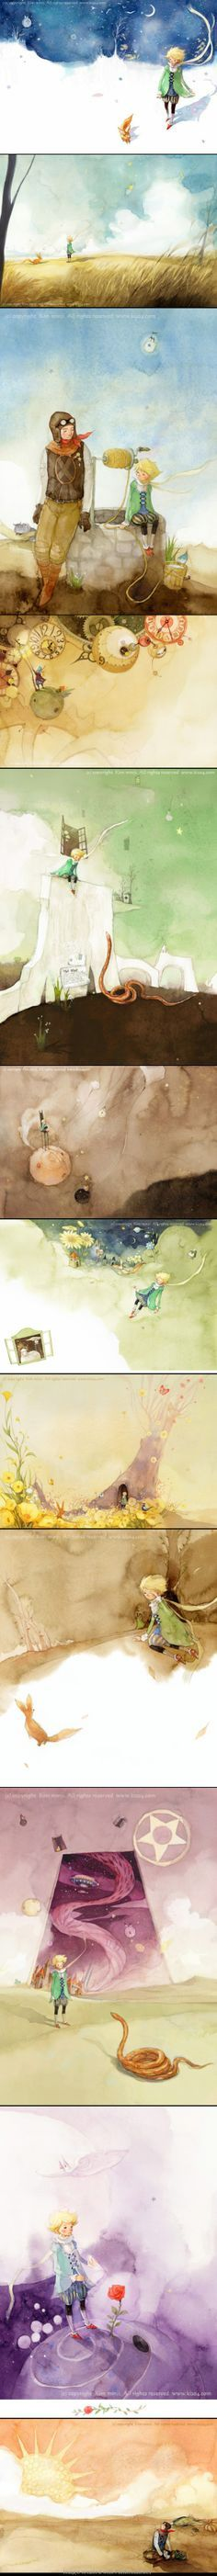 "Kim Min Ji's enchanting illustrations of Antoine de Saint-Exupéry's The Little Prince ( ""El Principito"" Antoine de Saint-Exupery ) Kim Min Ji, Photo Images, The Little Prince, Children's Book Illustration, Book Illustrations, Illustrators, Book Art, Concept Art, Art Drawings"